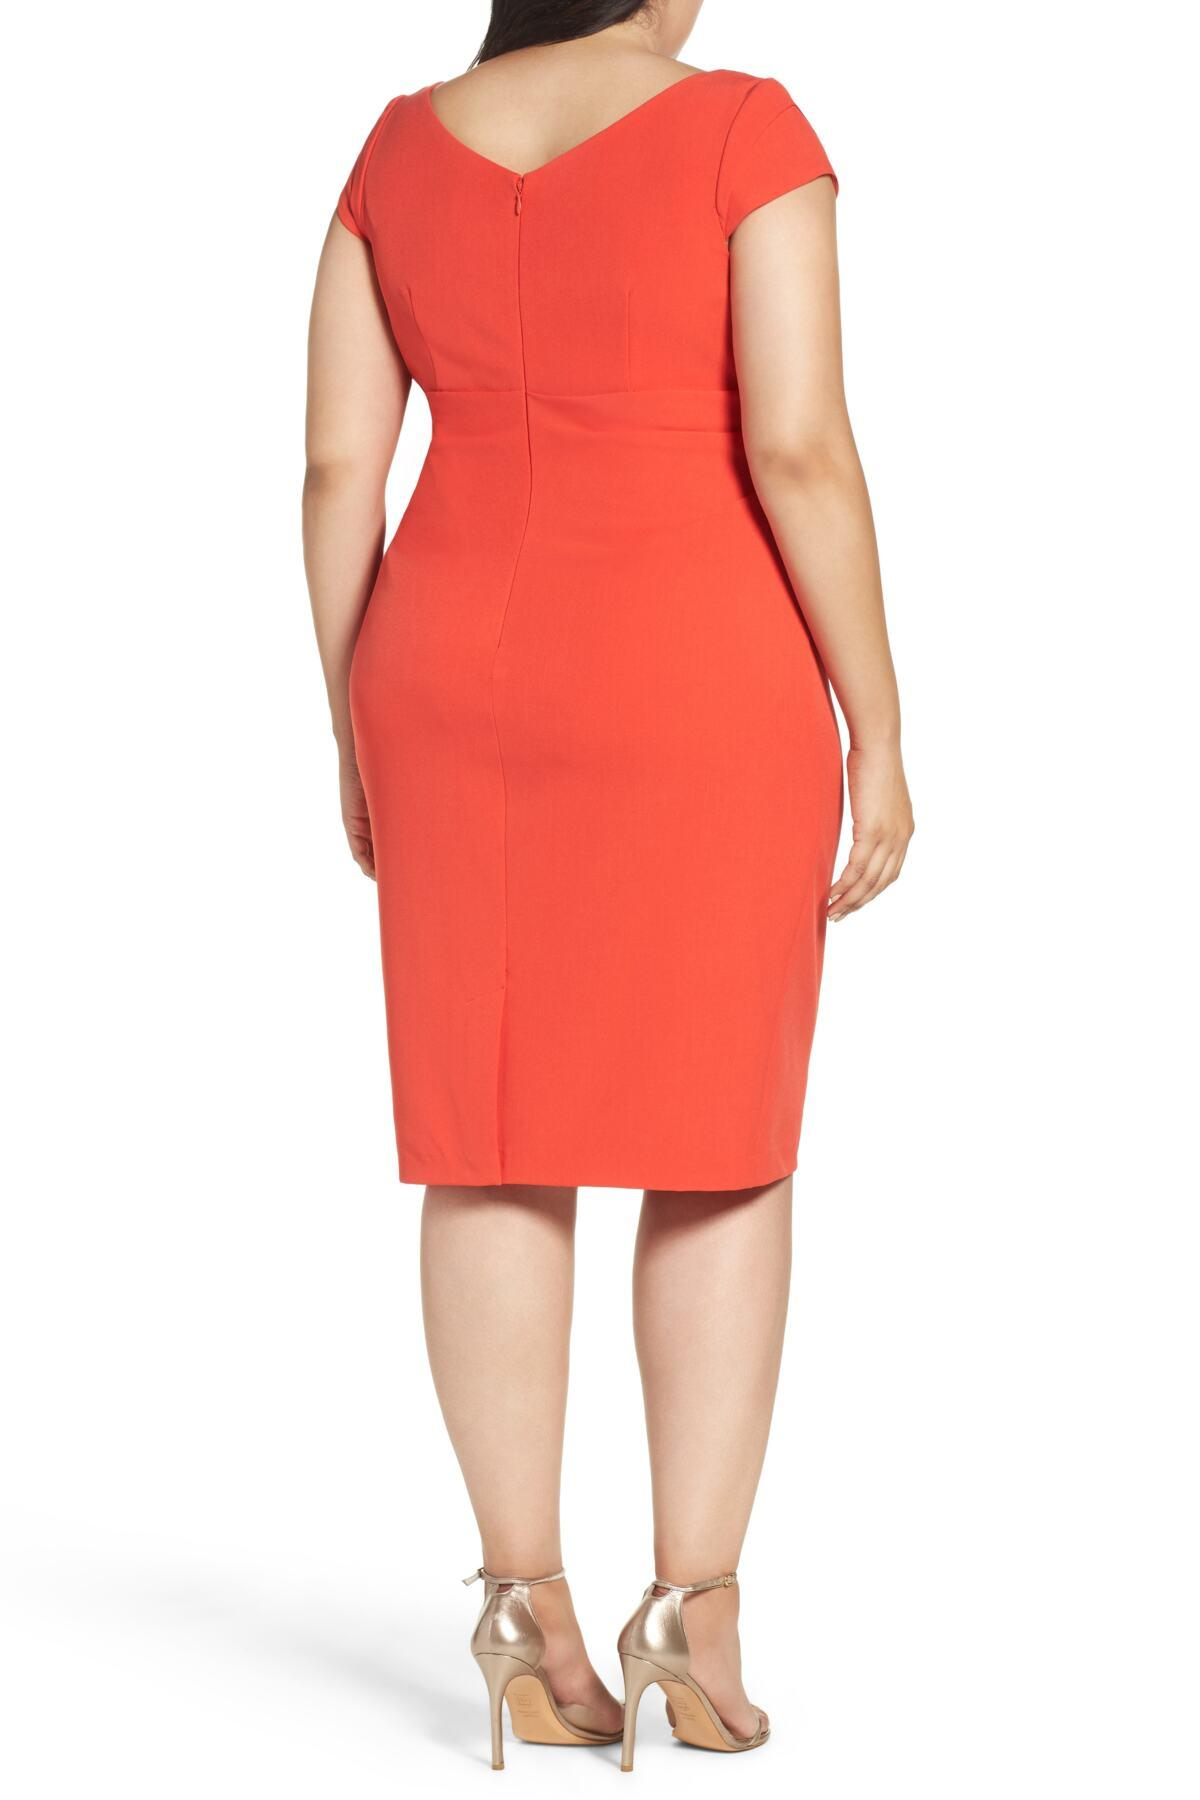 2ca282bf Adrianna Papell Draped Square Neck Sheath Dress (plus Size) in Red ...